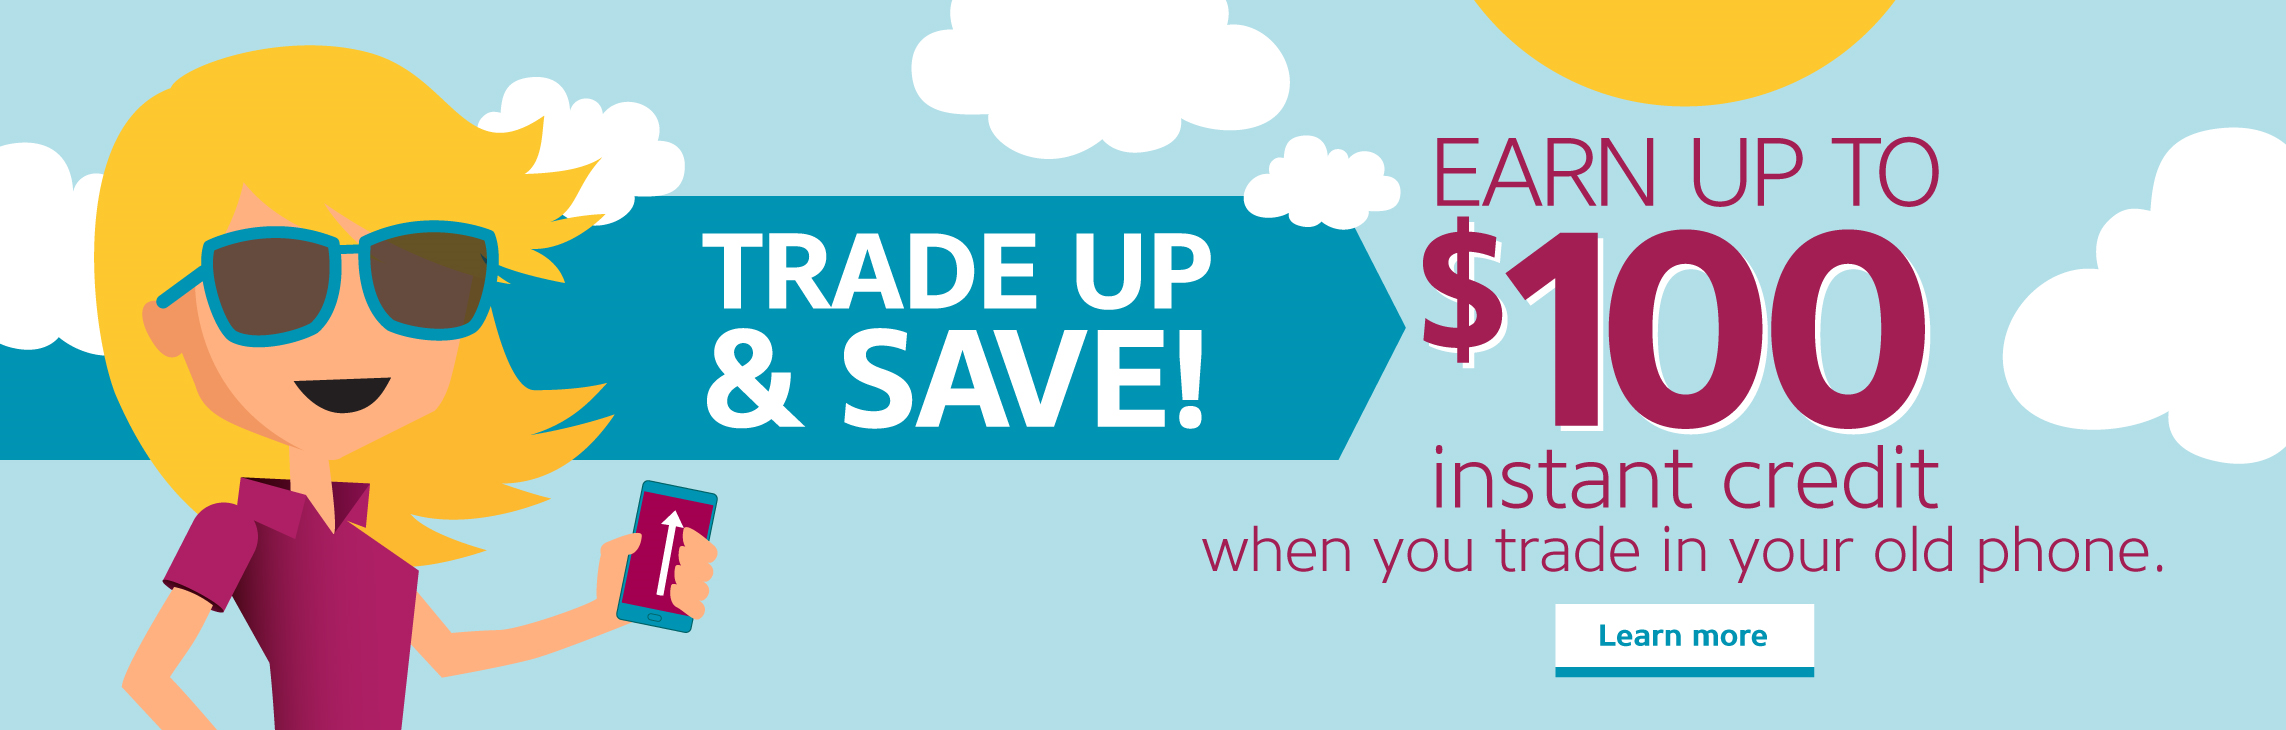 Trade Up & Save!